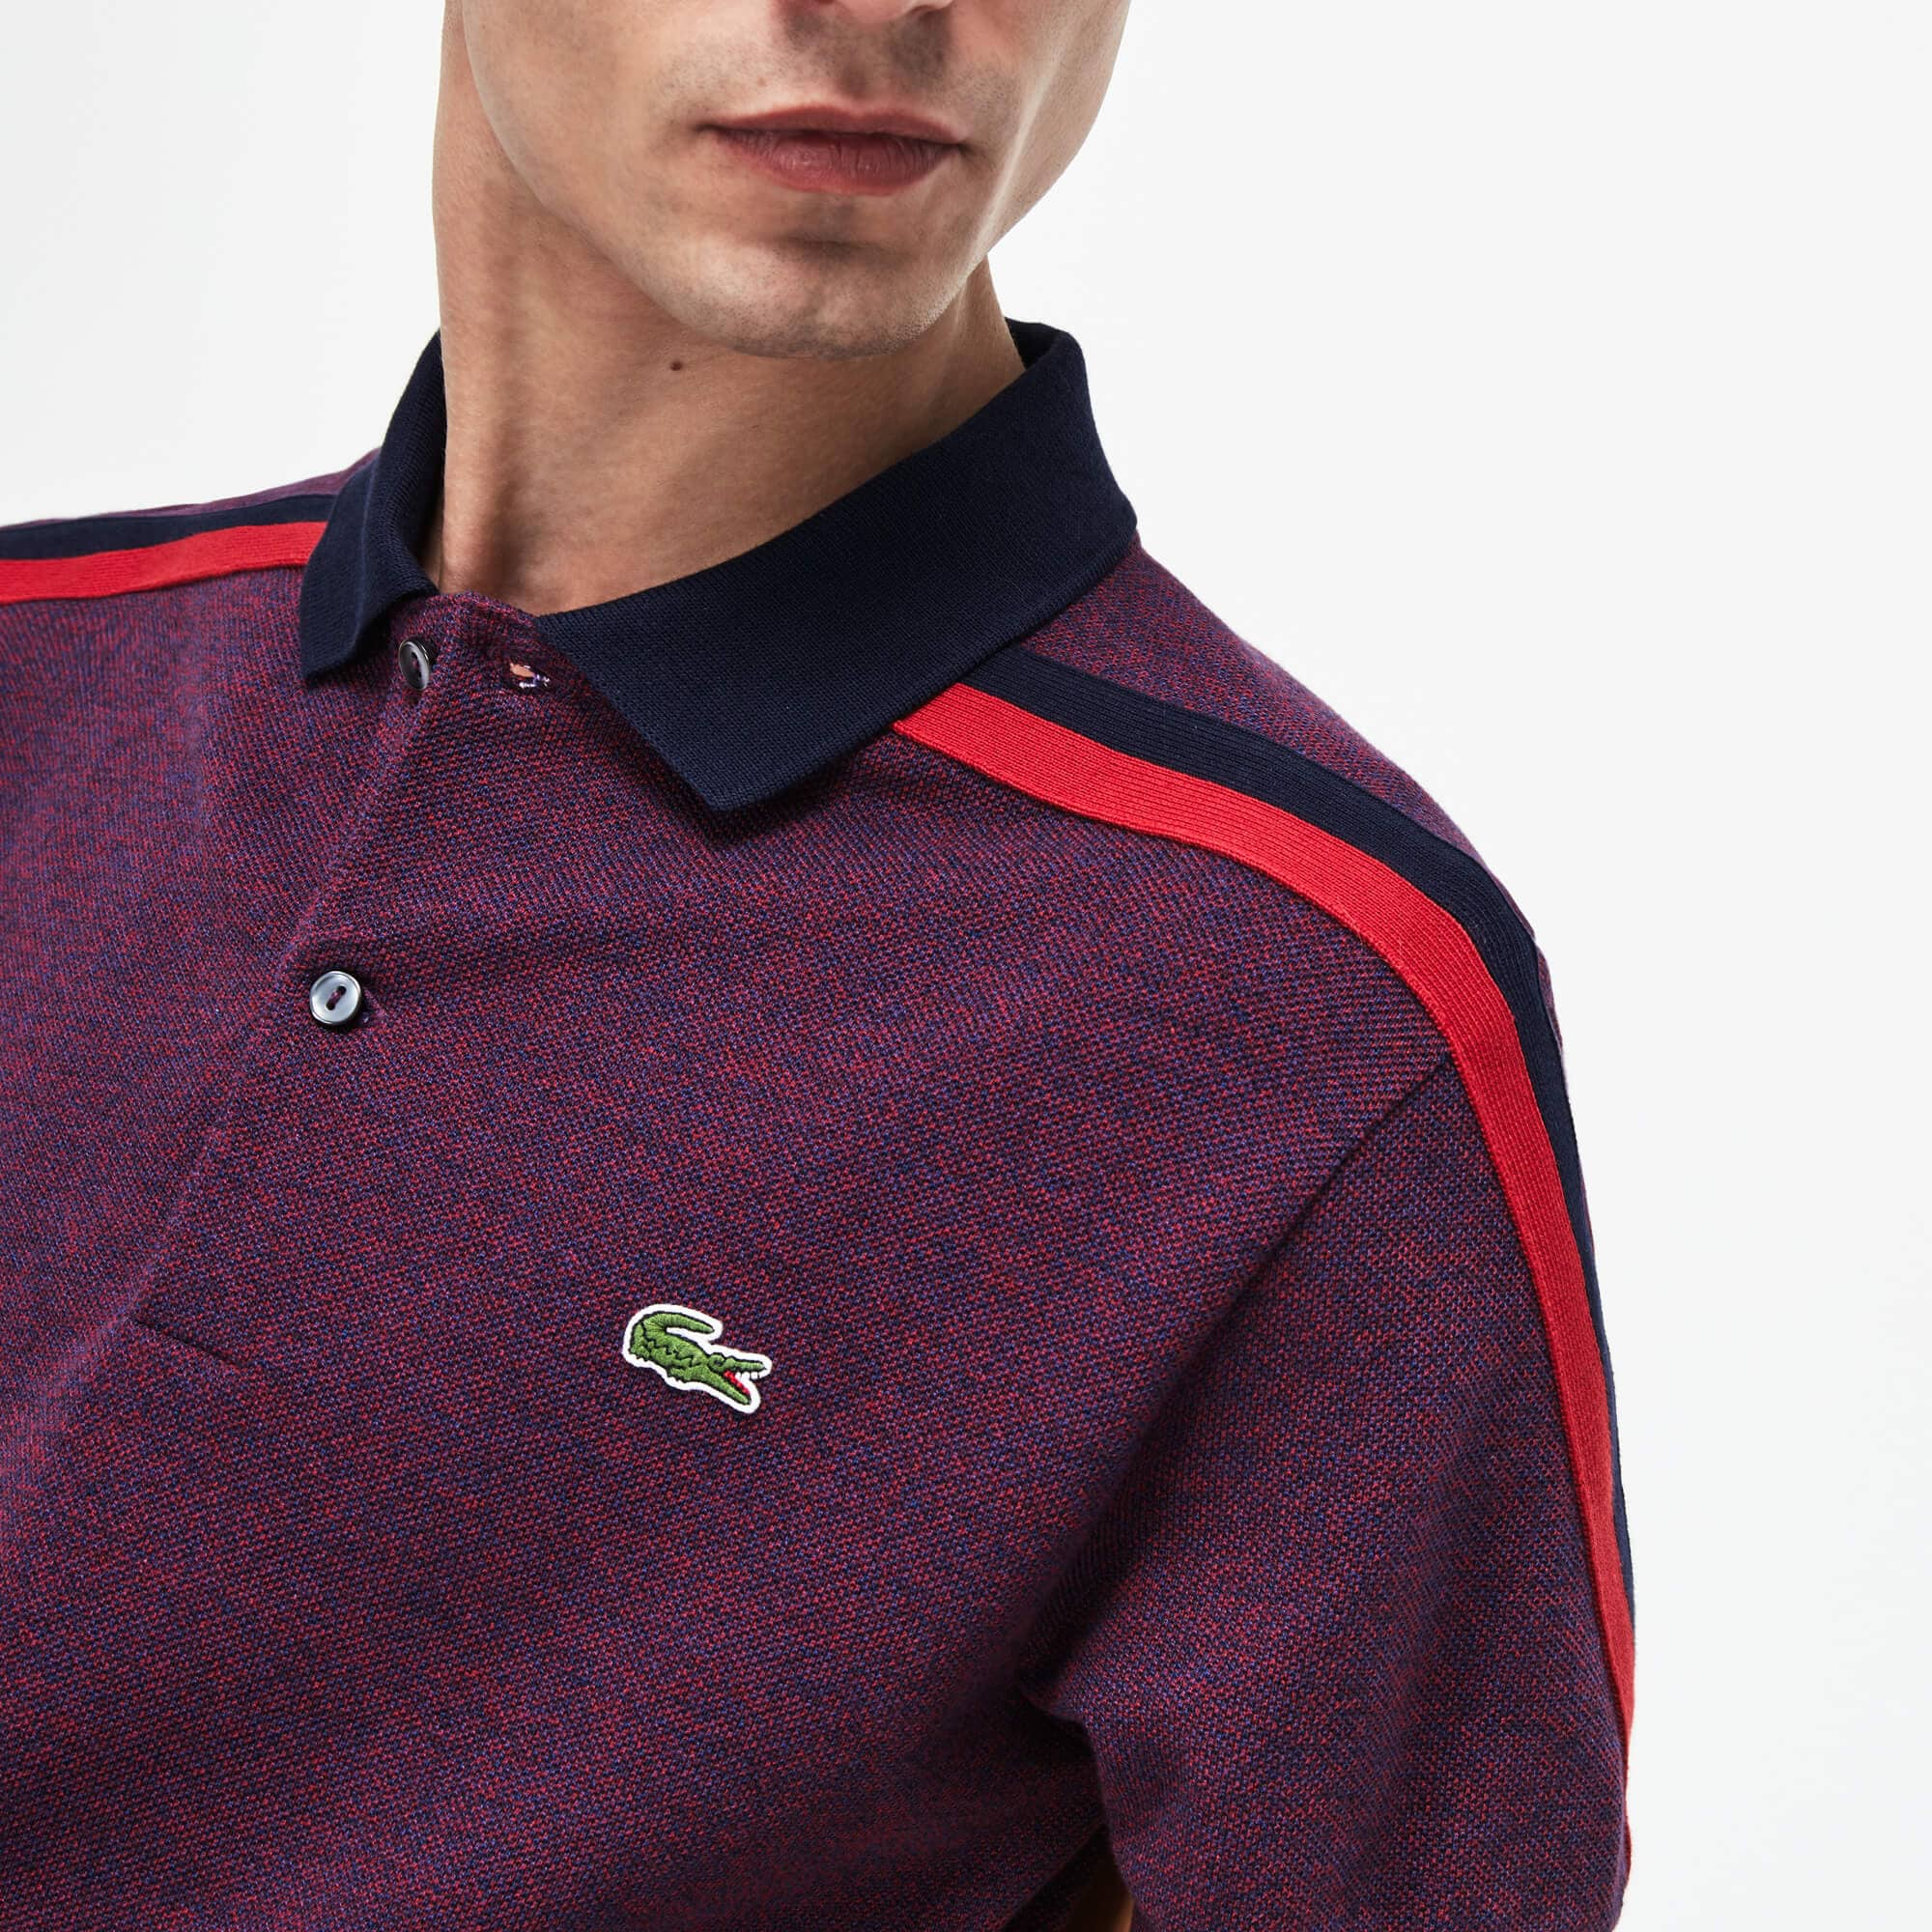 Lacoste - Polo De Hombre Lacoste Made In France Regular Fit En Piqué De Algodón - 6